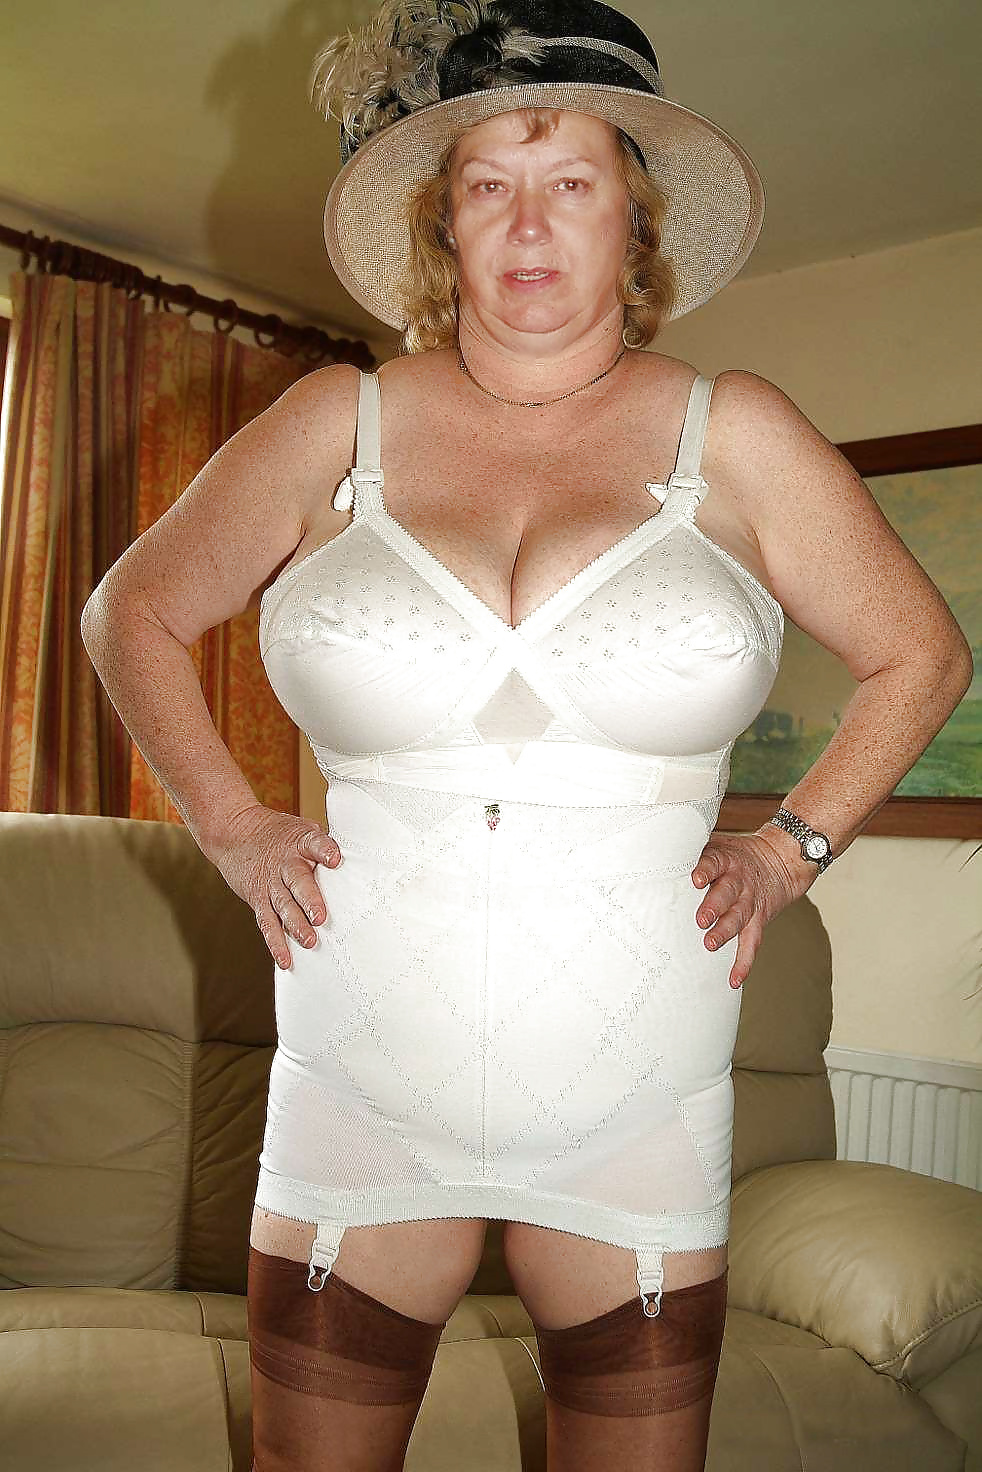 girdle-video-granny-mature-blood-comes-from-pussy-videos